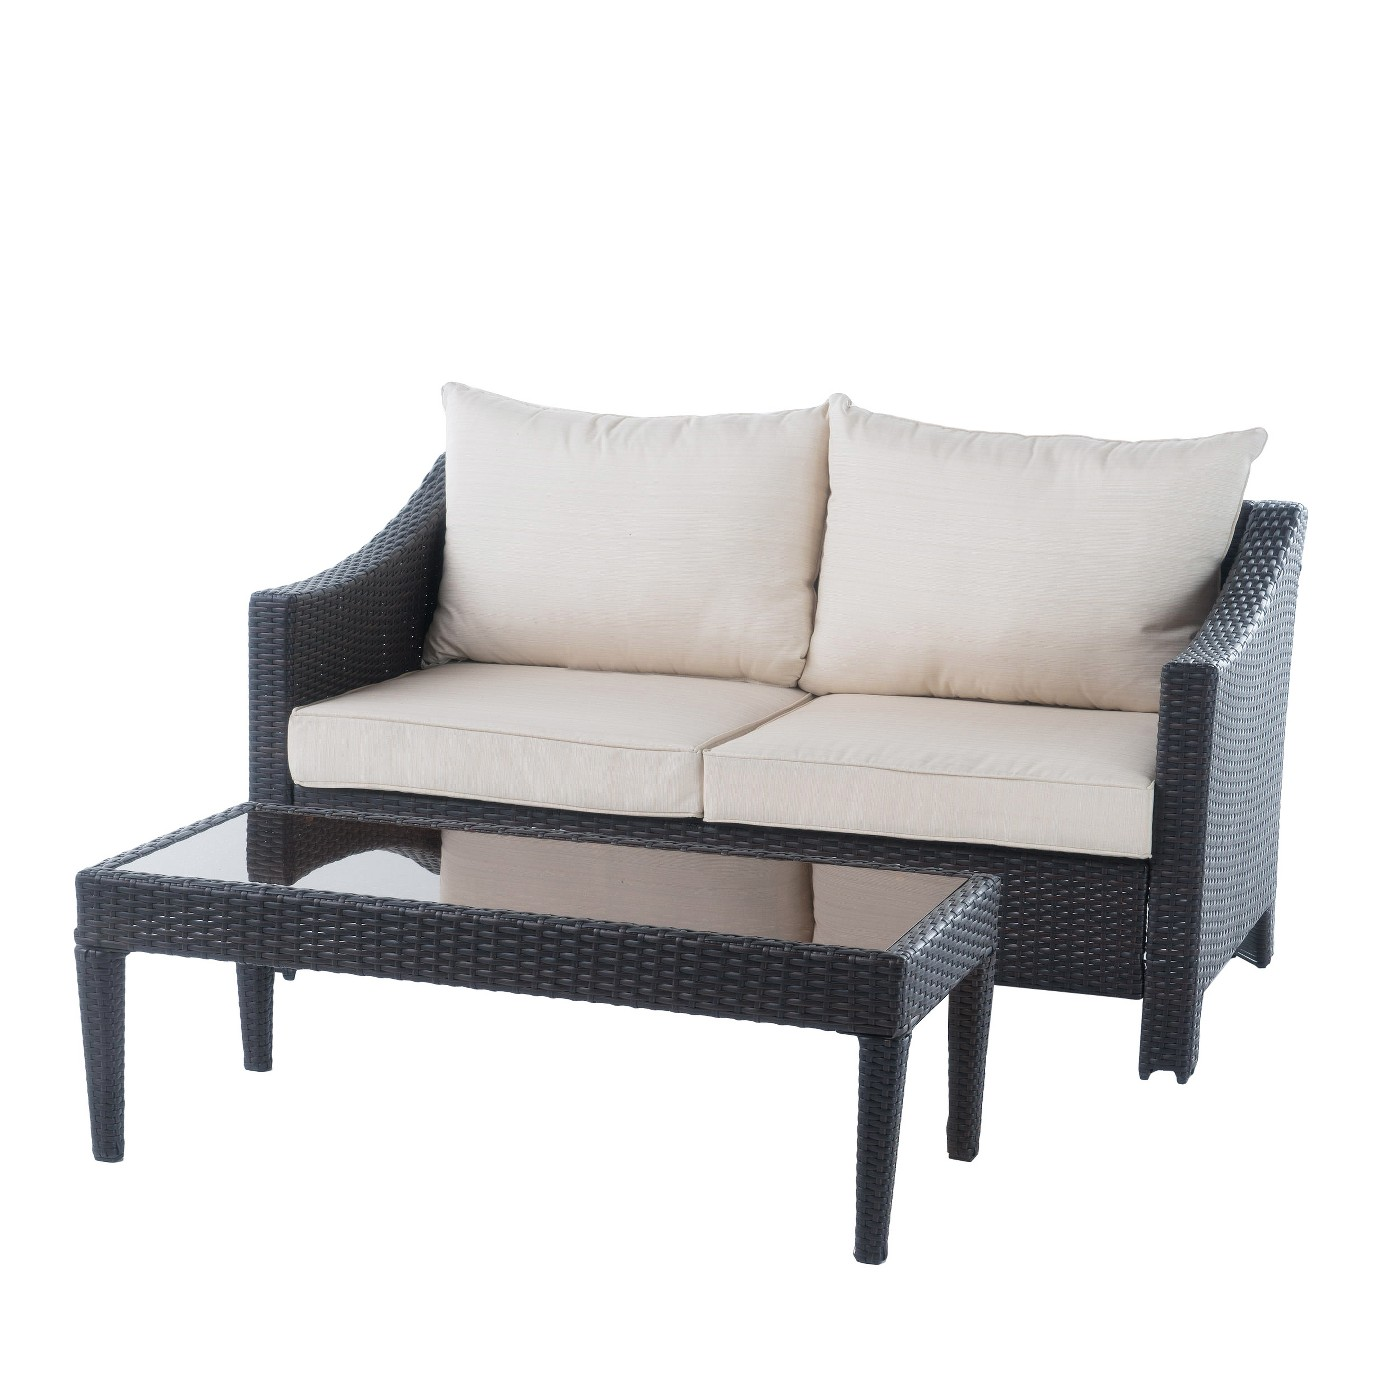 Wicker Loveseat.jpg